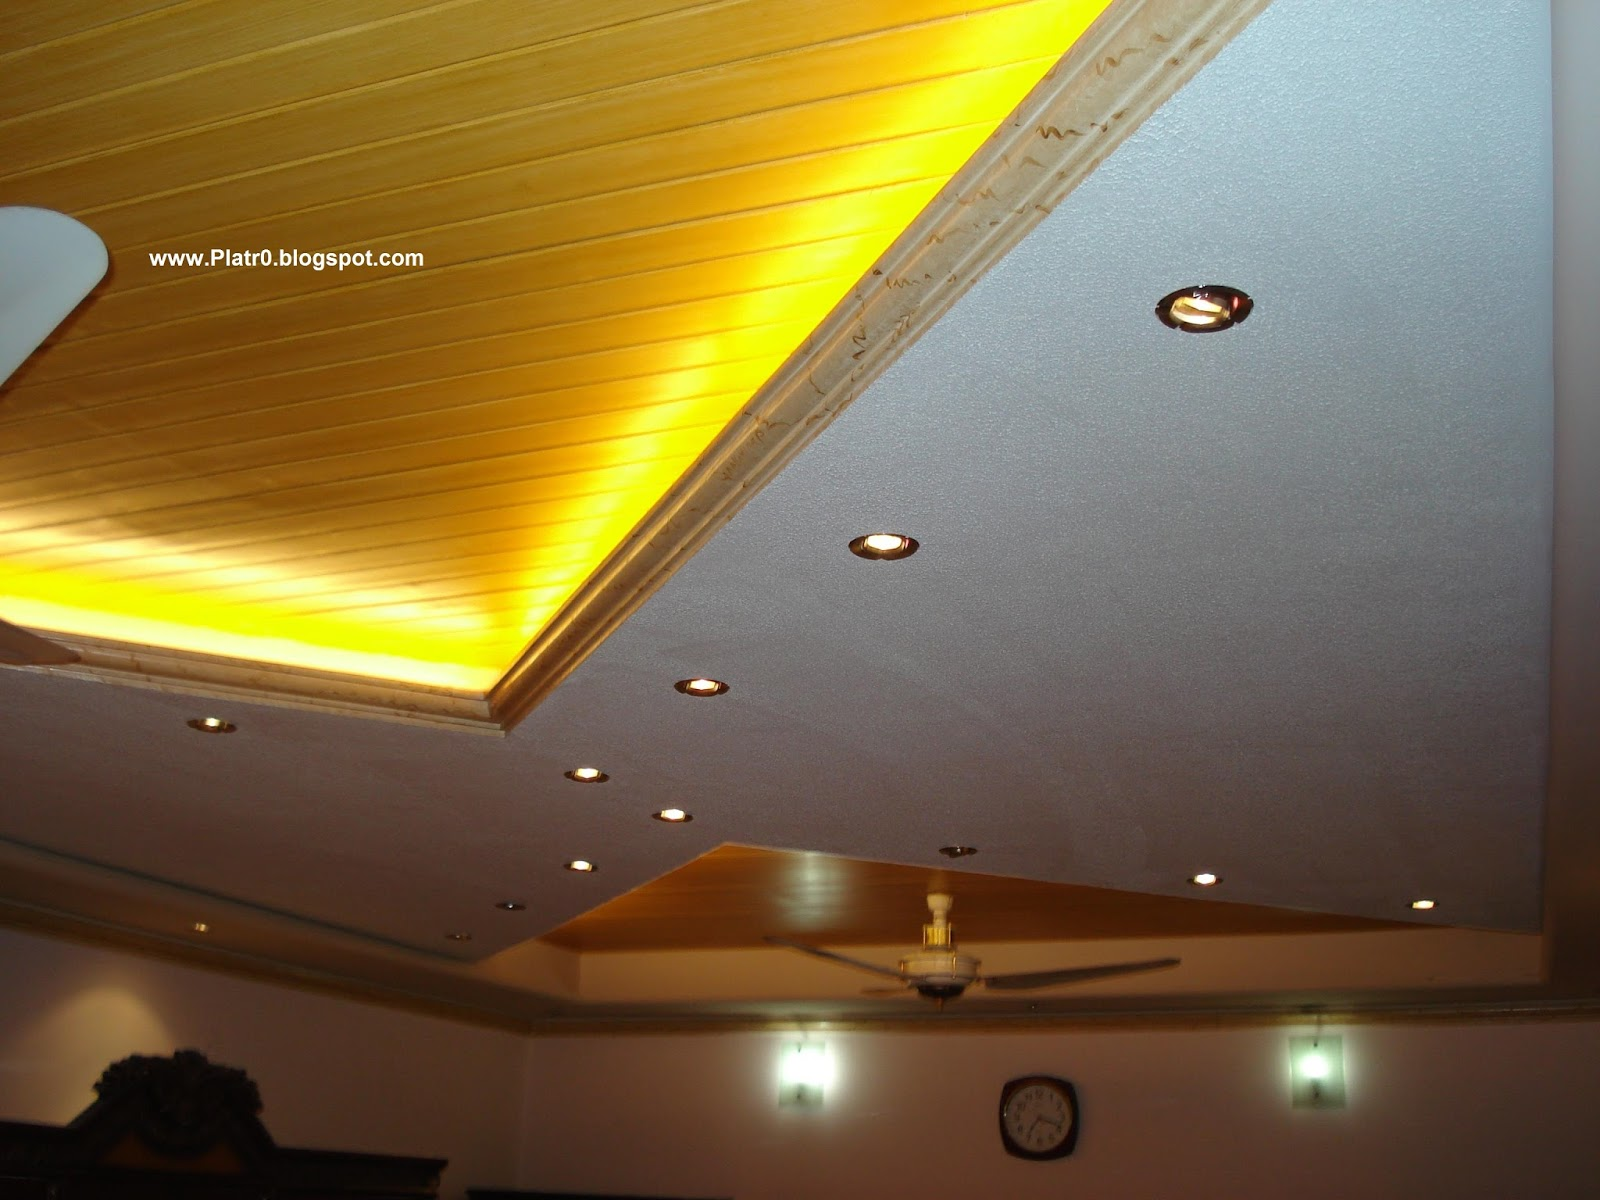 Mode ceiling lights led 2016 d coration platre maroc for Dicor platr maroc